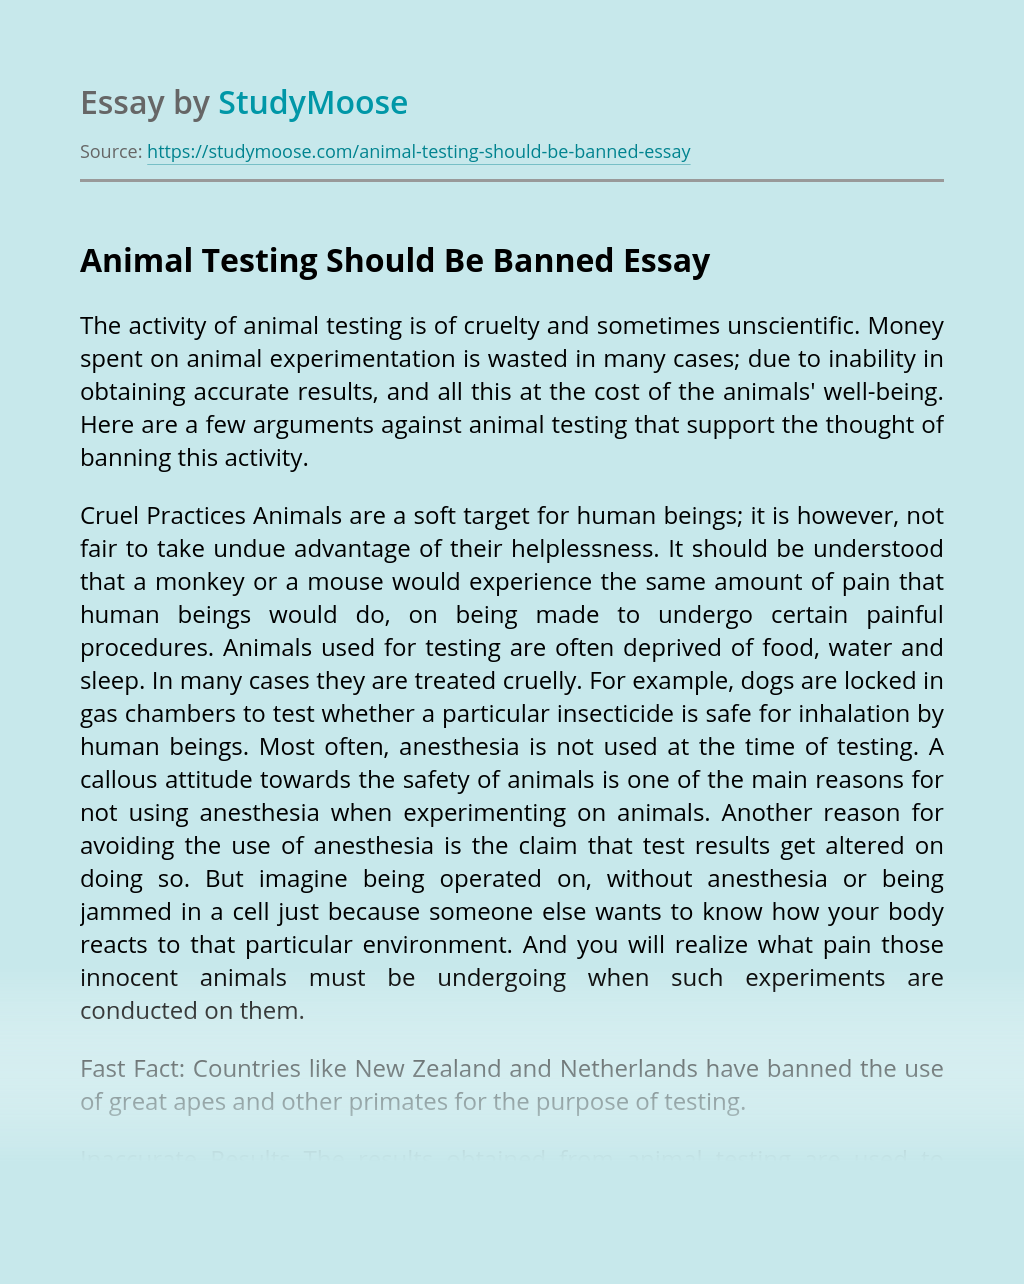 Animal Testing Should Be Banned